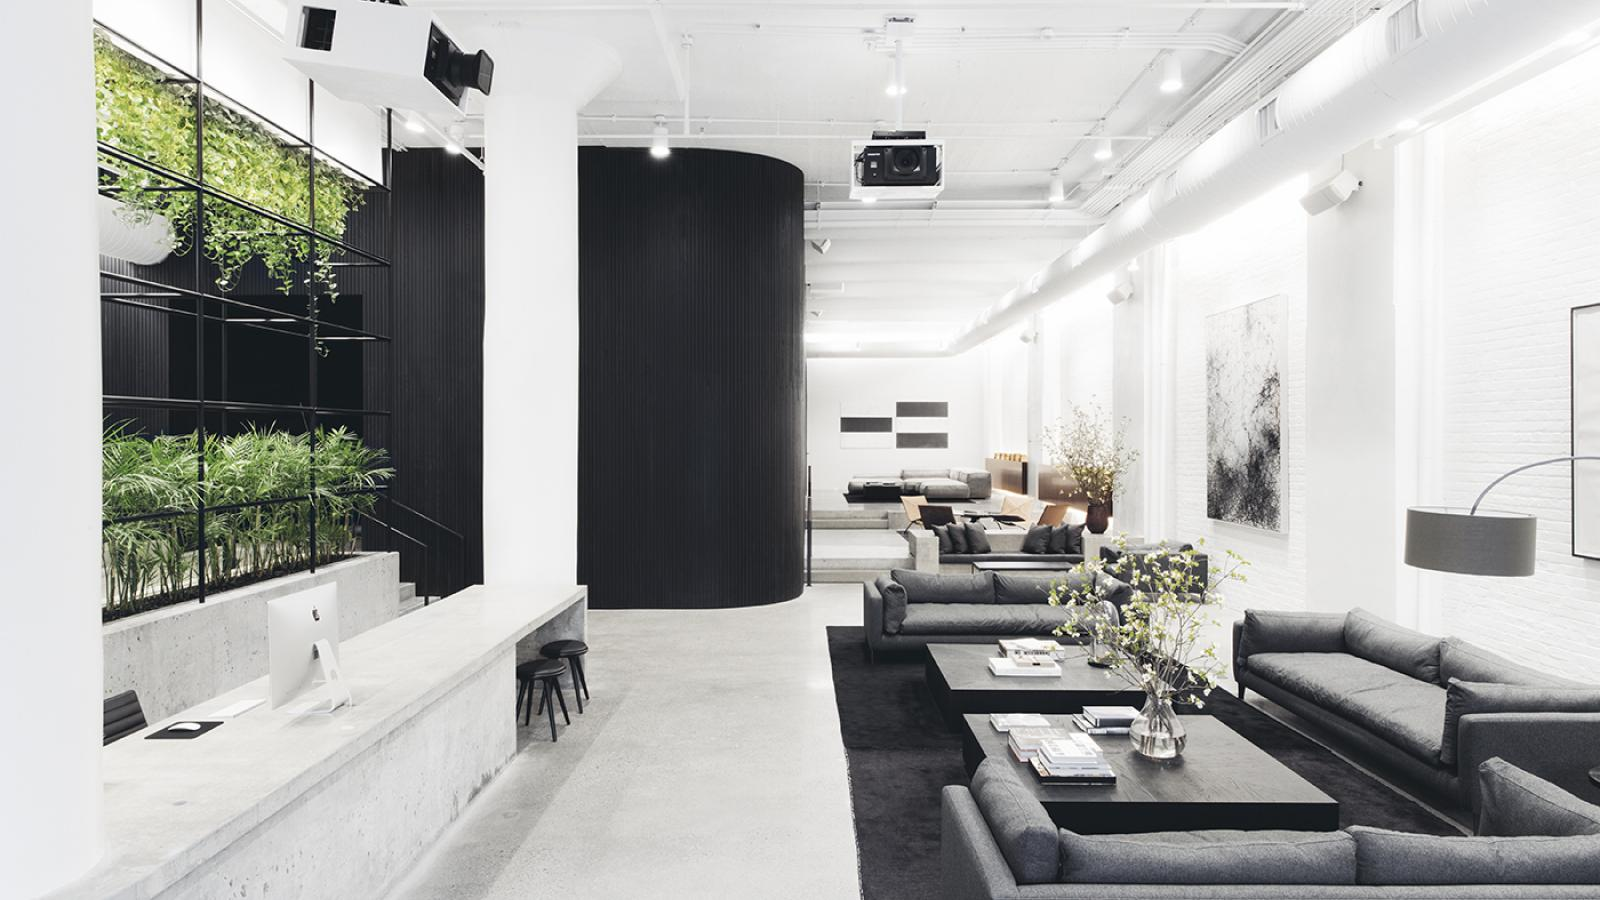 Inside the NYC Squarespace HQ